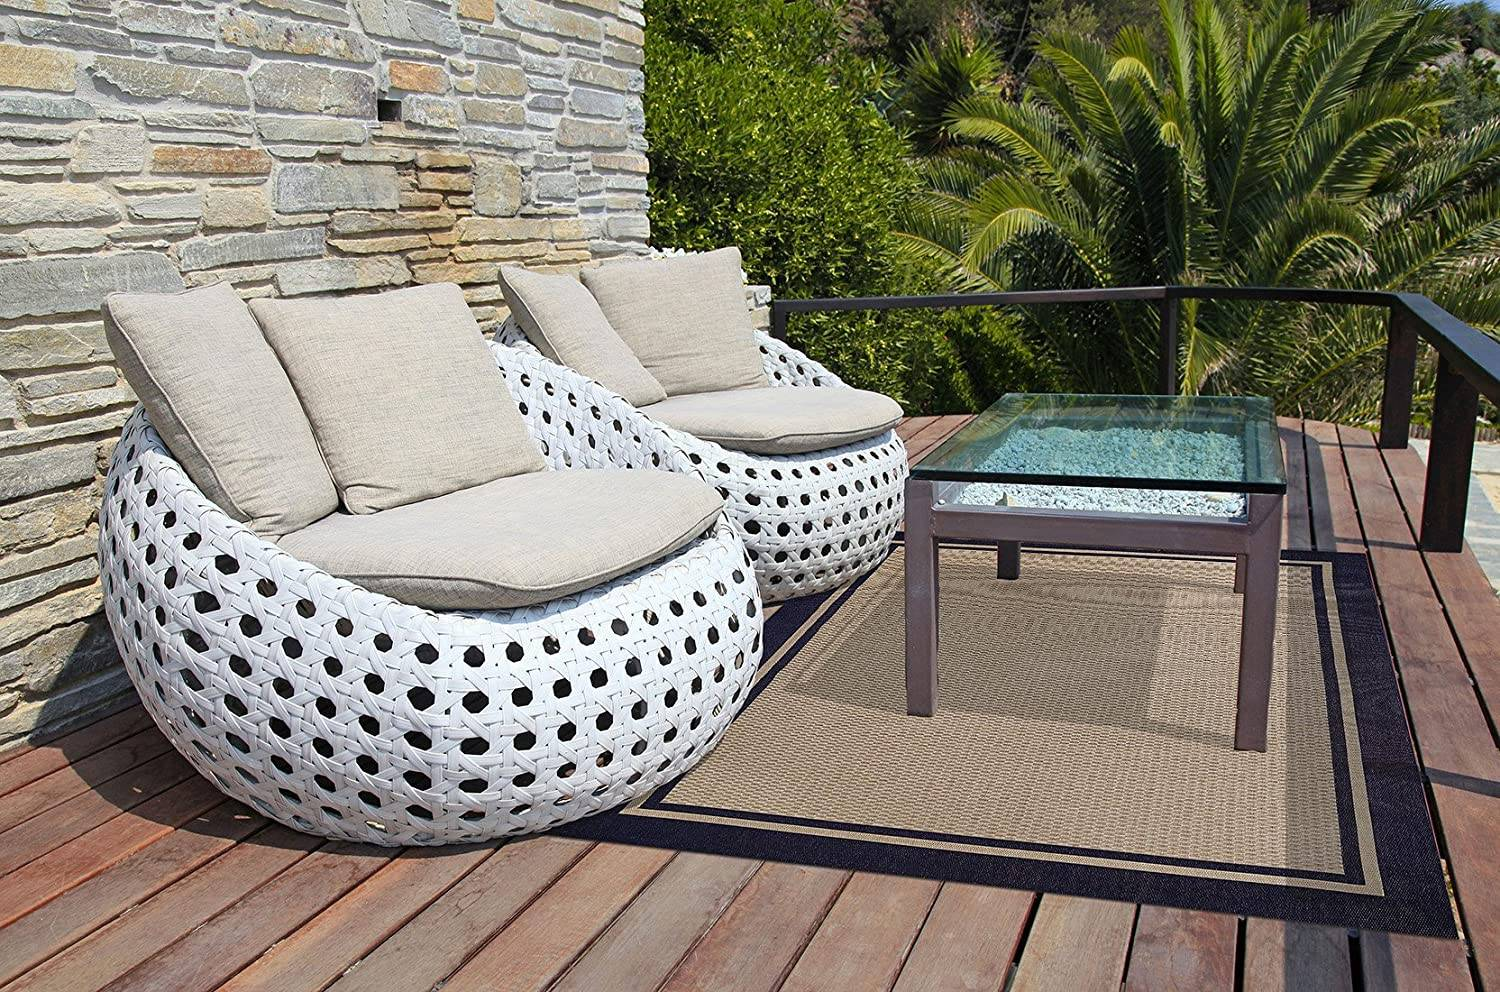 Modern Chic Artsy Patio Alternative Seating Round Bubble Chairs